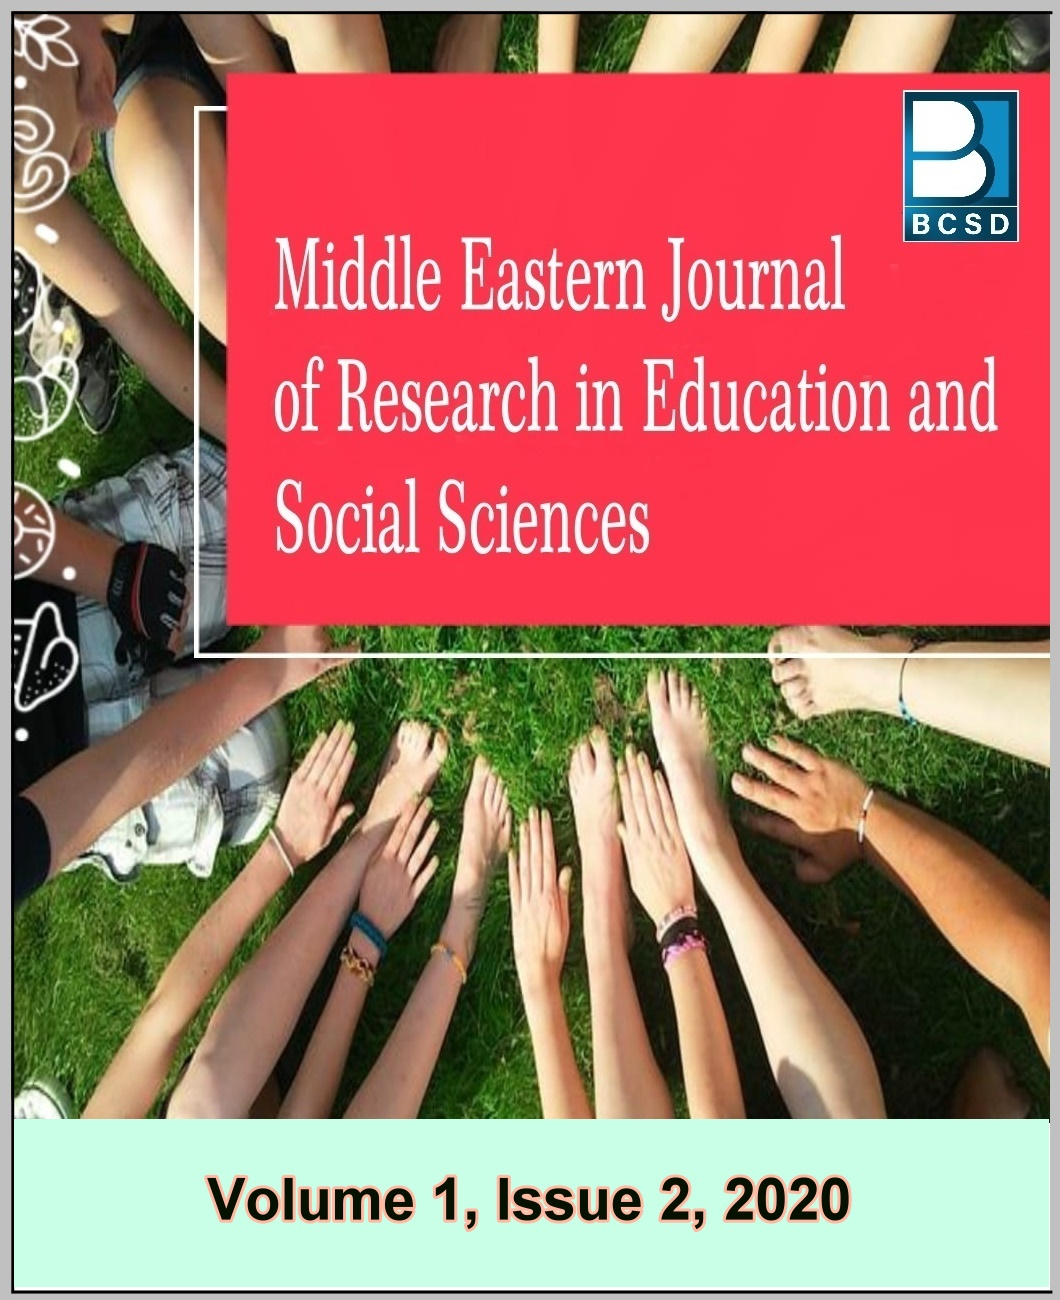 Middle Eastern Journal of Research in Education and Social Sciences-Asos İndeks